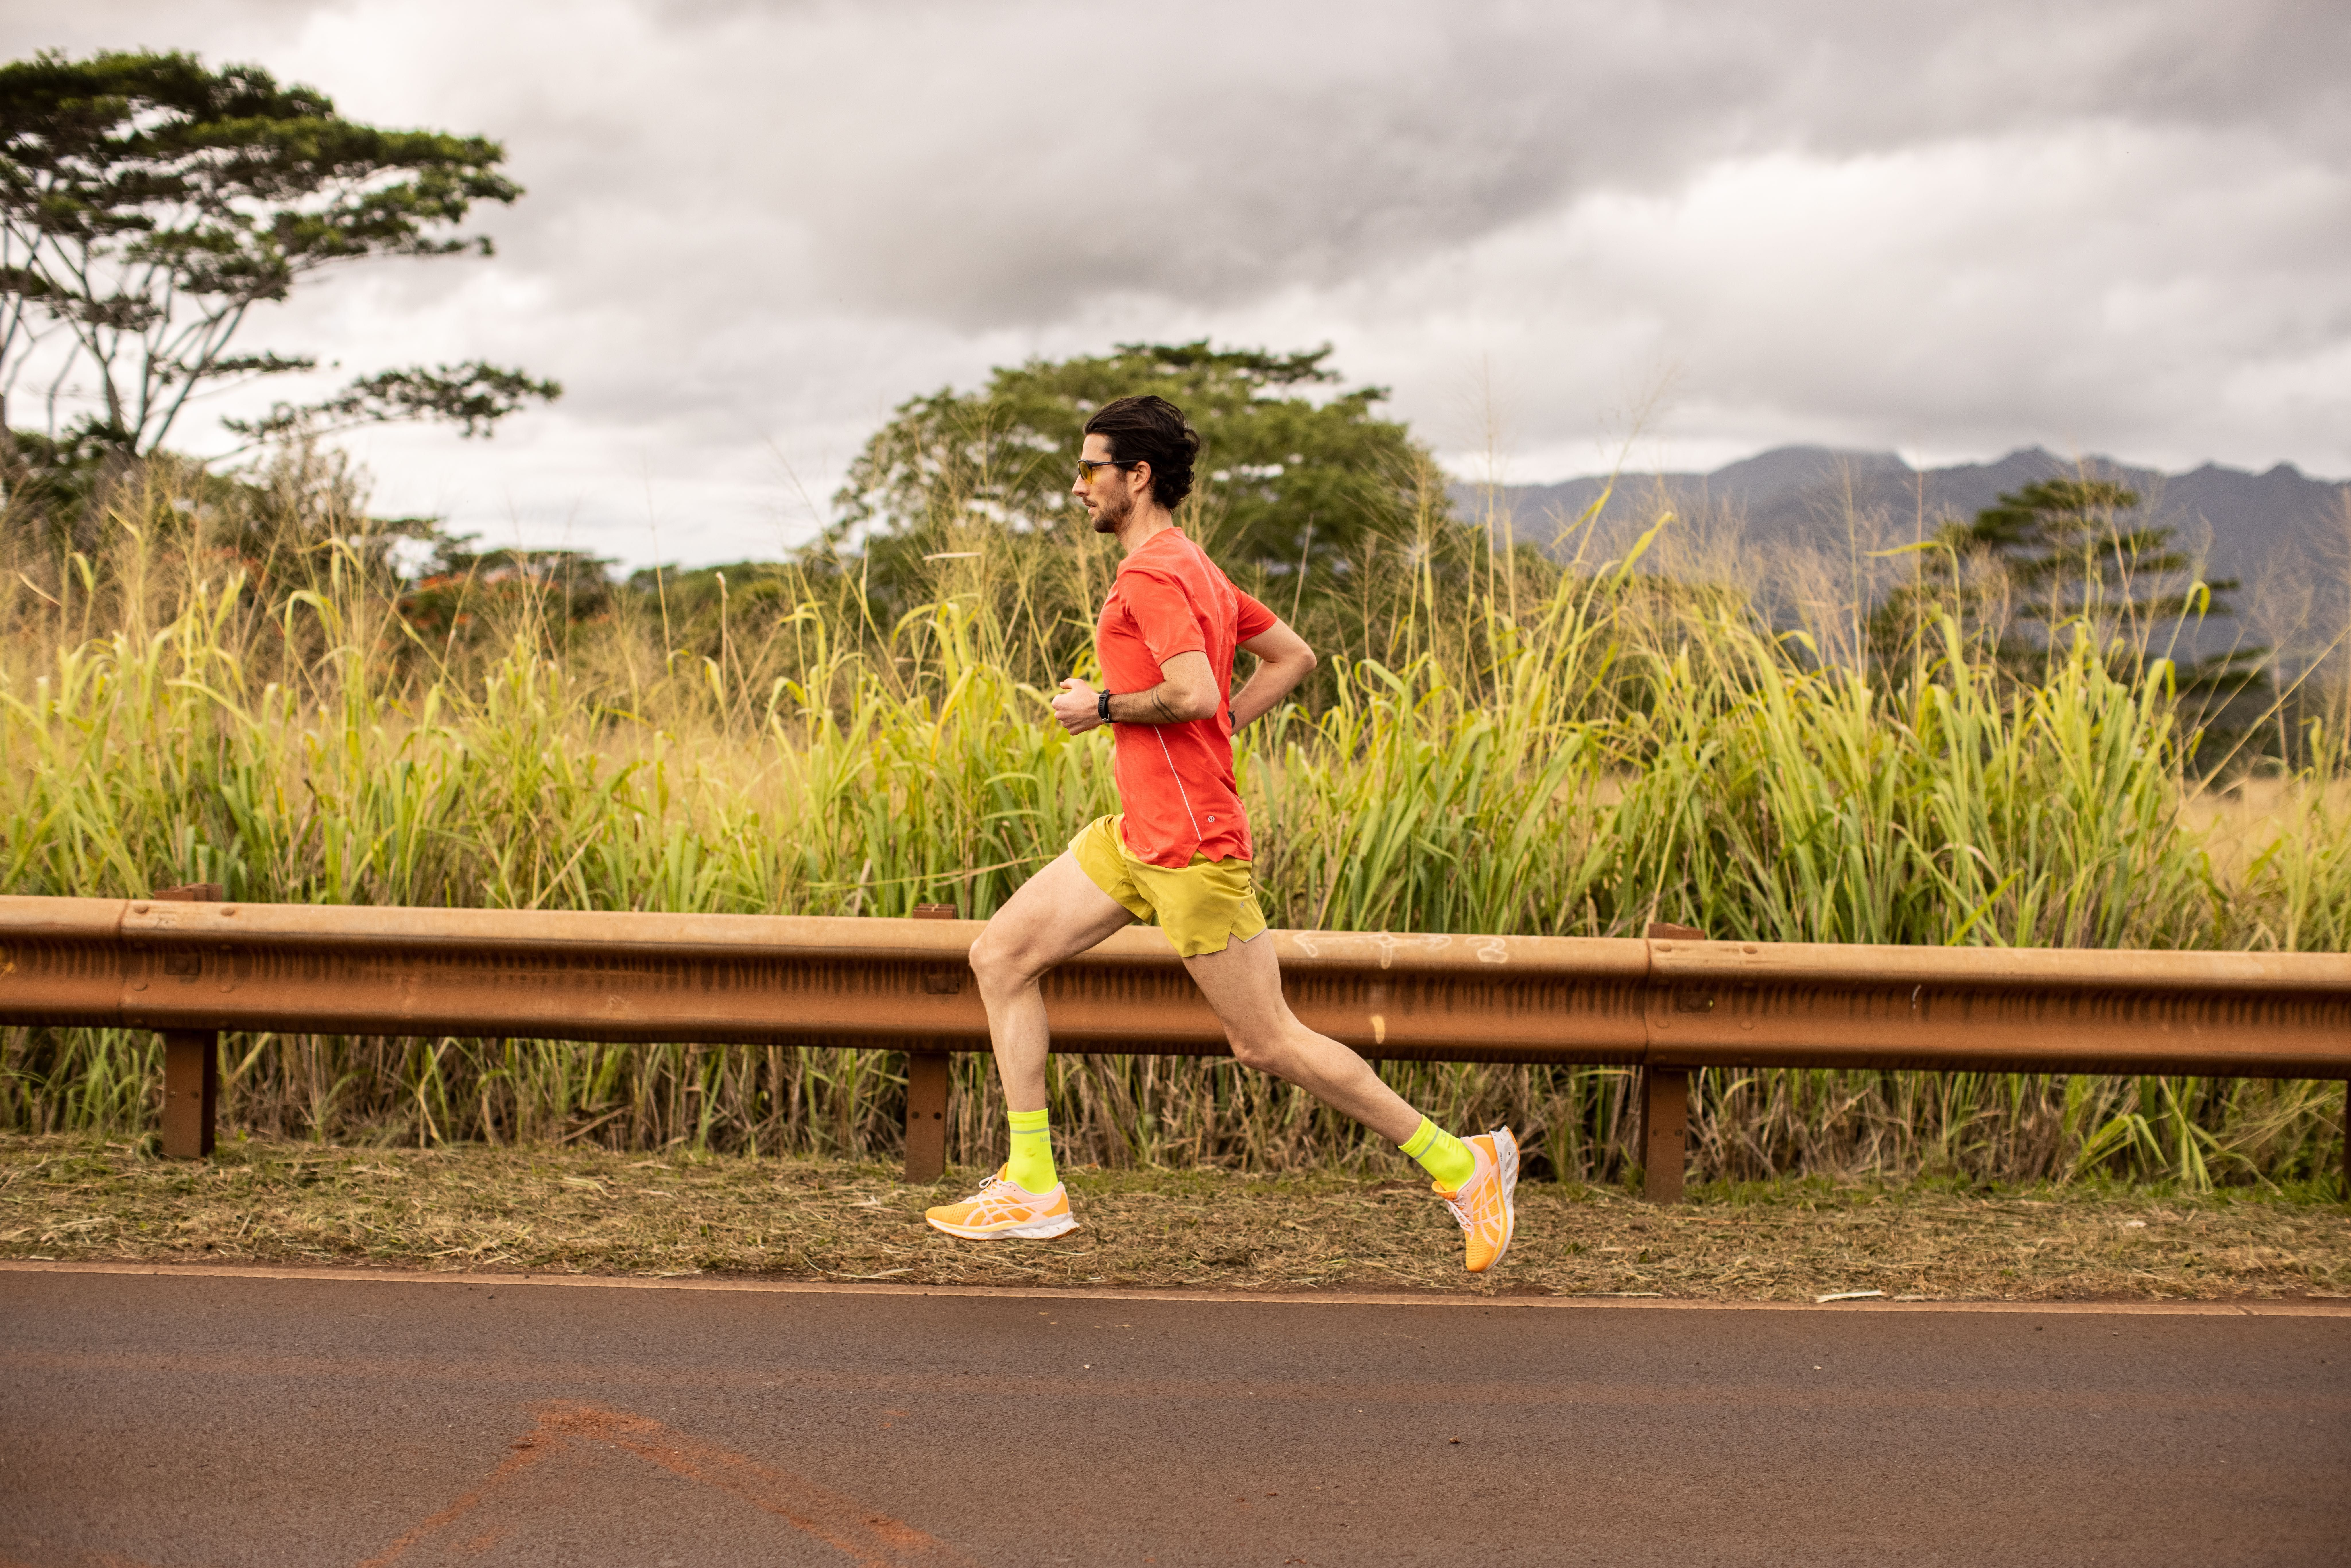 Make the Last Mile of Your Run the Fastest by Following These 5 Steps